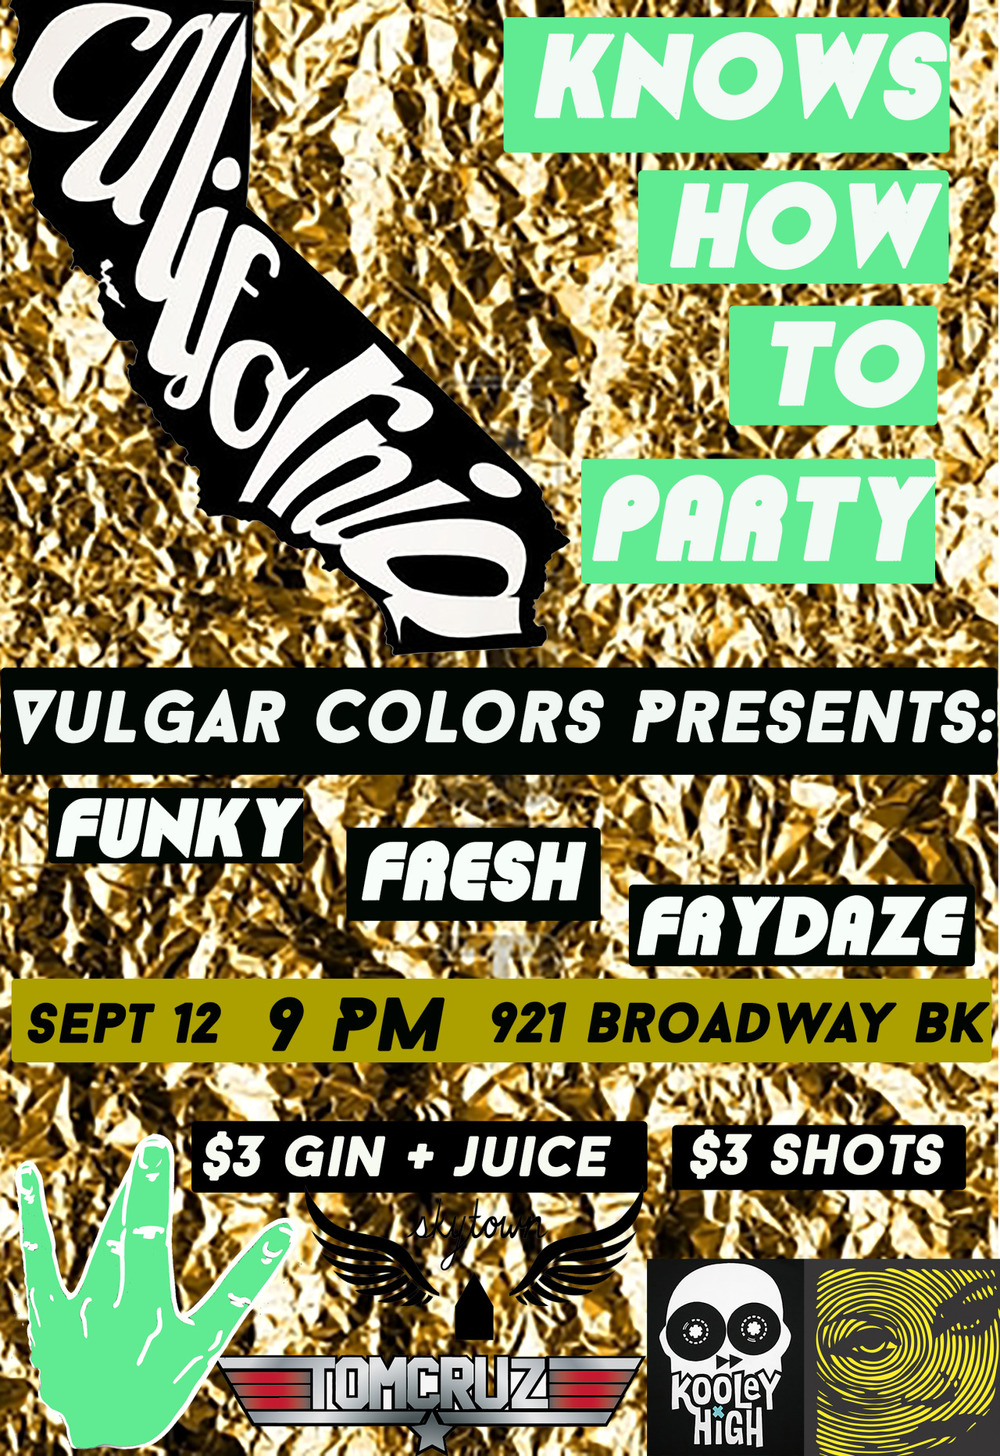 vulgarcolors: We've done the souf edition.  Now it's time to bring the west coast to Brooklyn at skytownbk Friday nite. 9.12 x 9 pm.  Oh boy, $3 Gin and Juice Drink Specials.  DJ Tom Cruz + DJ Ill Digitz from Kooley High choppin' it up with us!